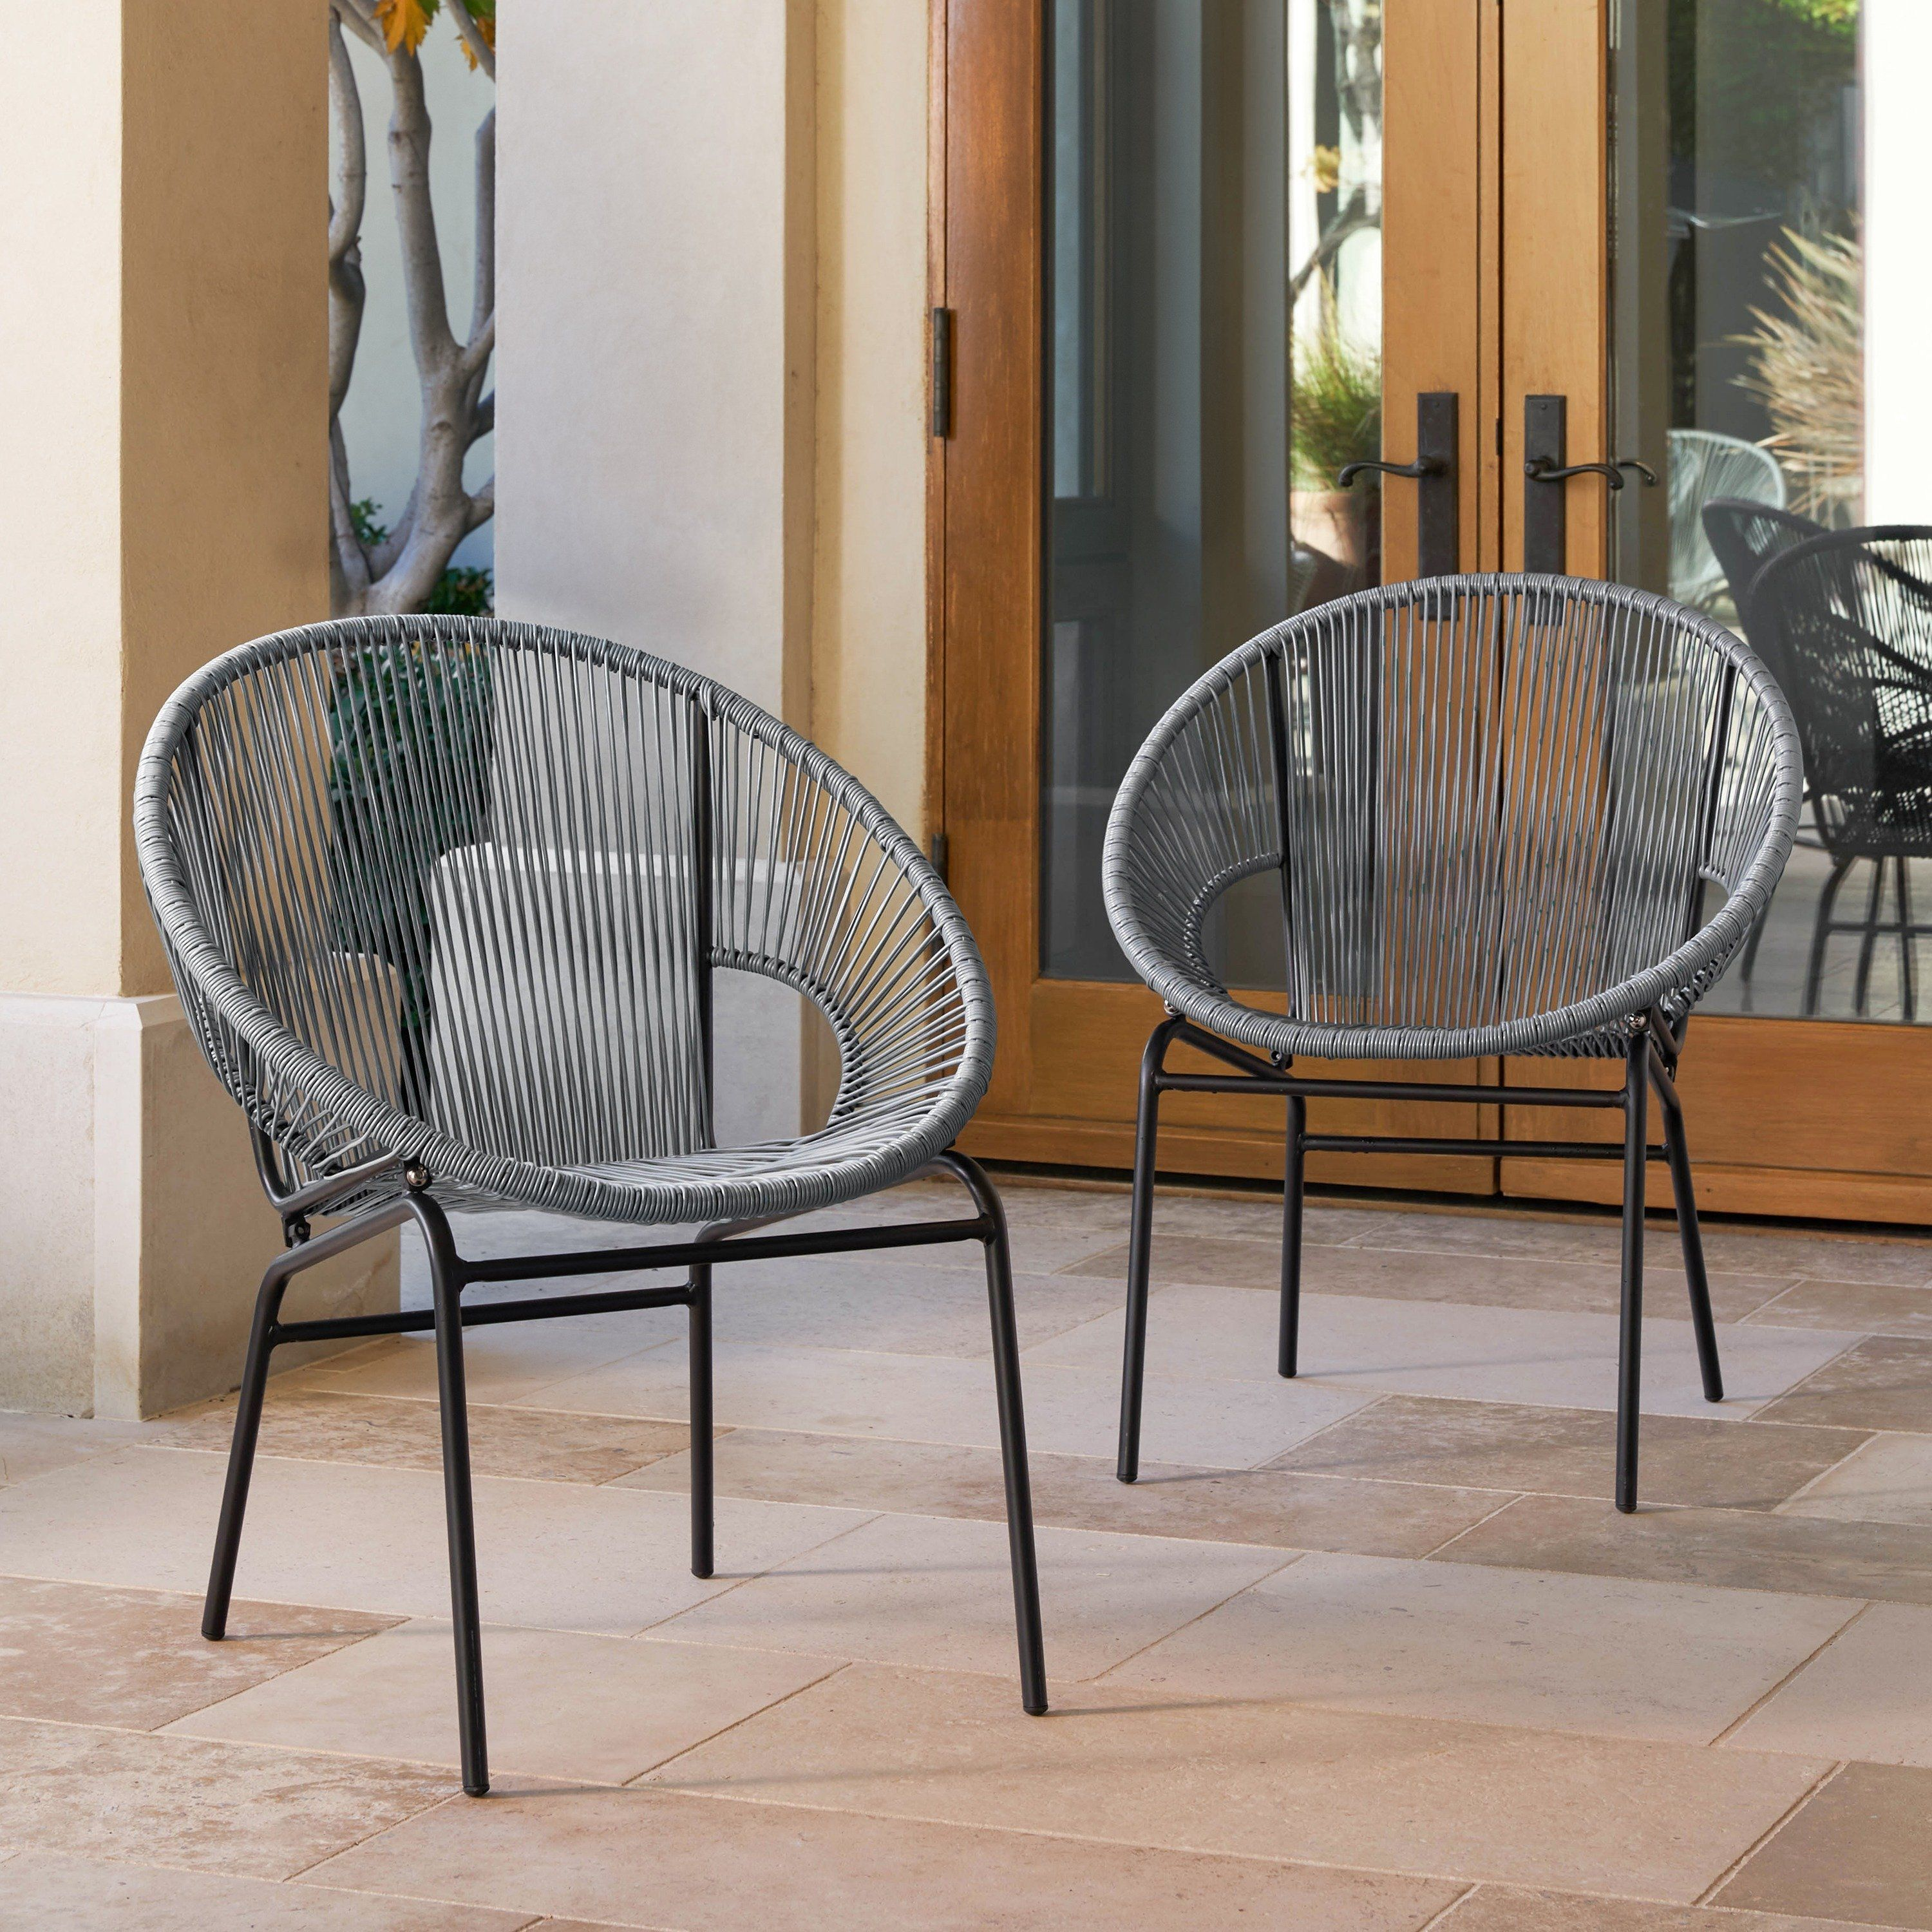 Overstock Com Online Shopping Bedding Furniture Electronics Jewelry Clothing More Wicker Patio Chairs Metal Patio Furniture Resin Patio Furniture